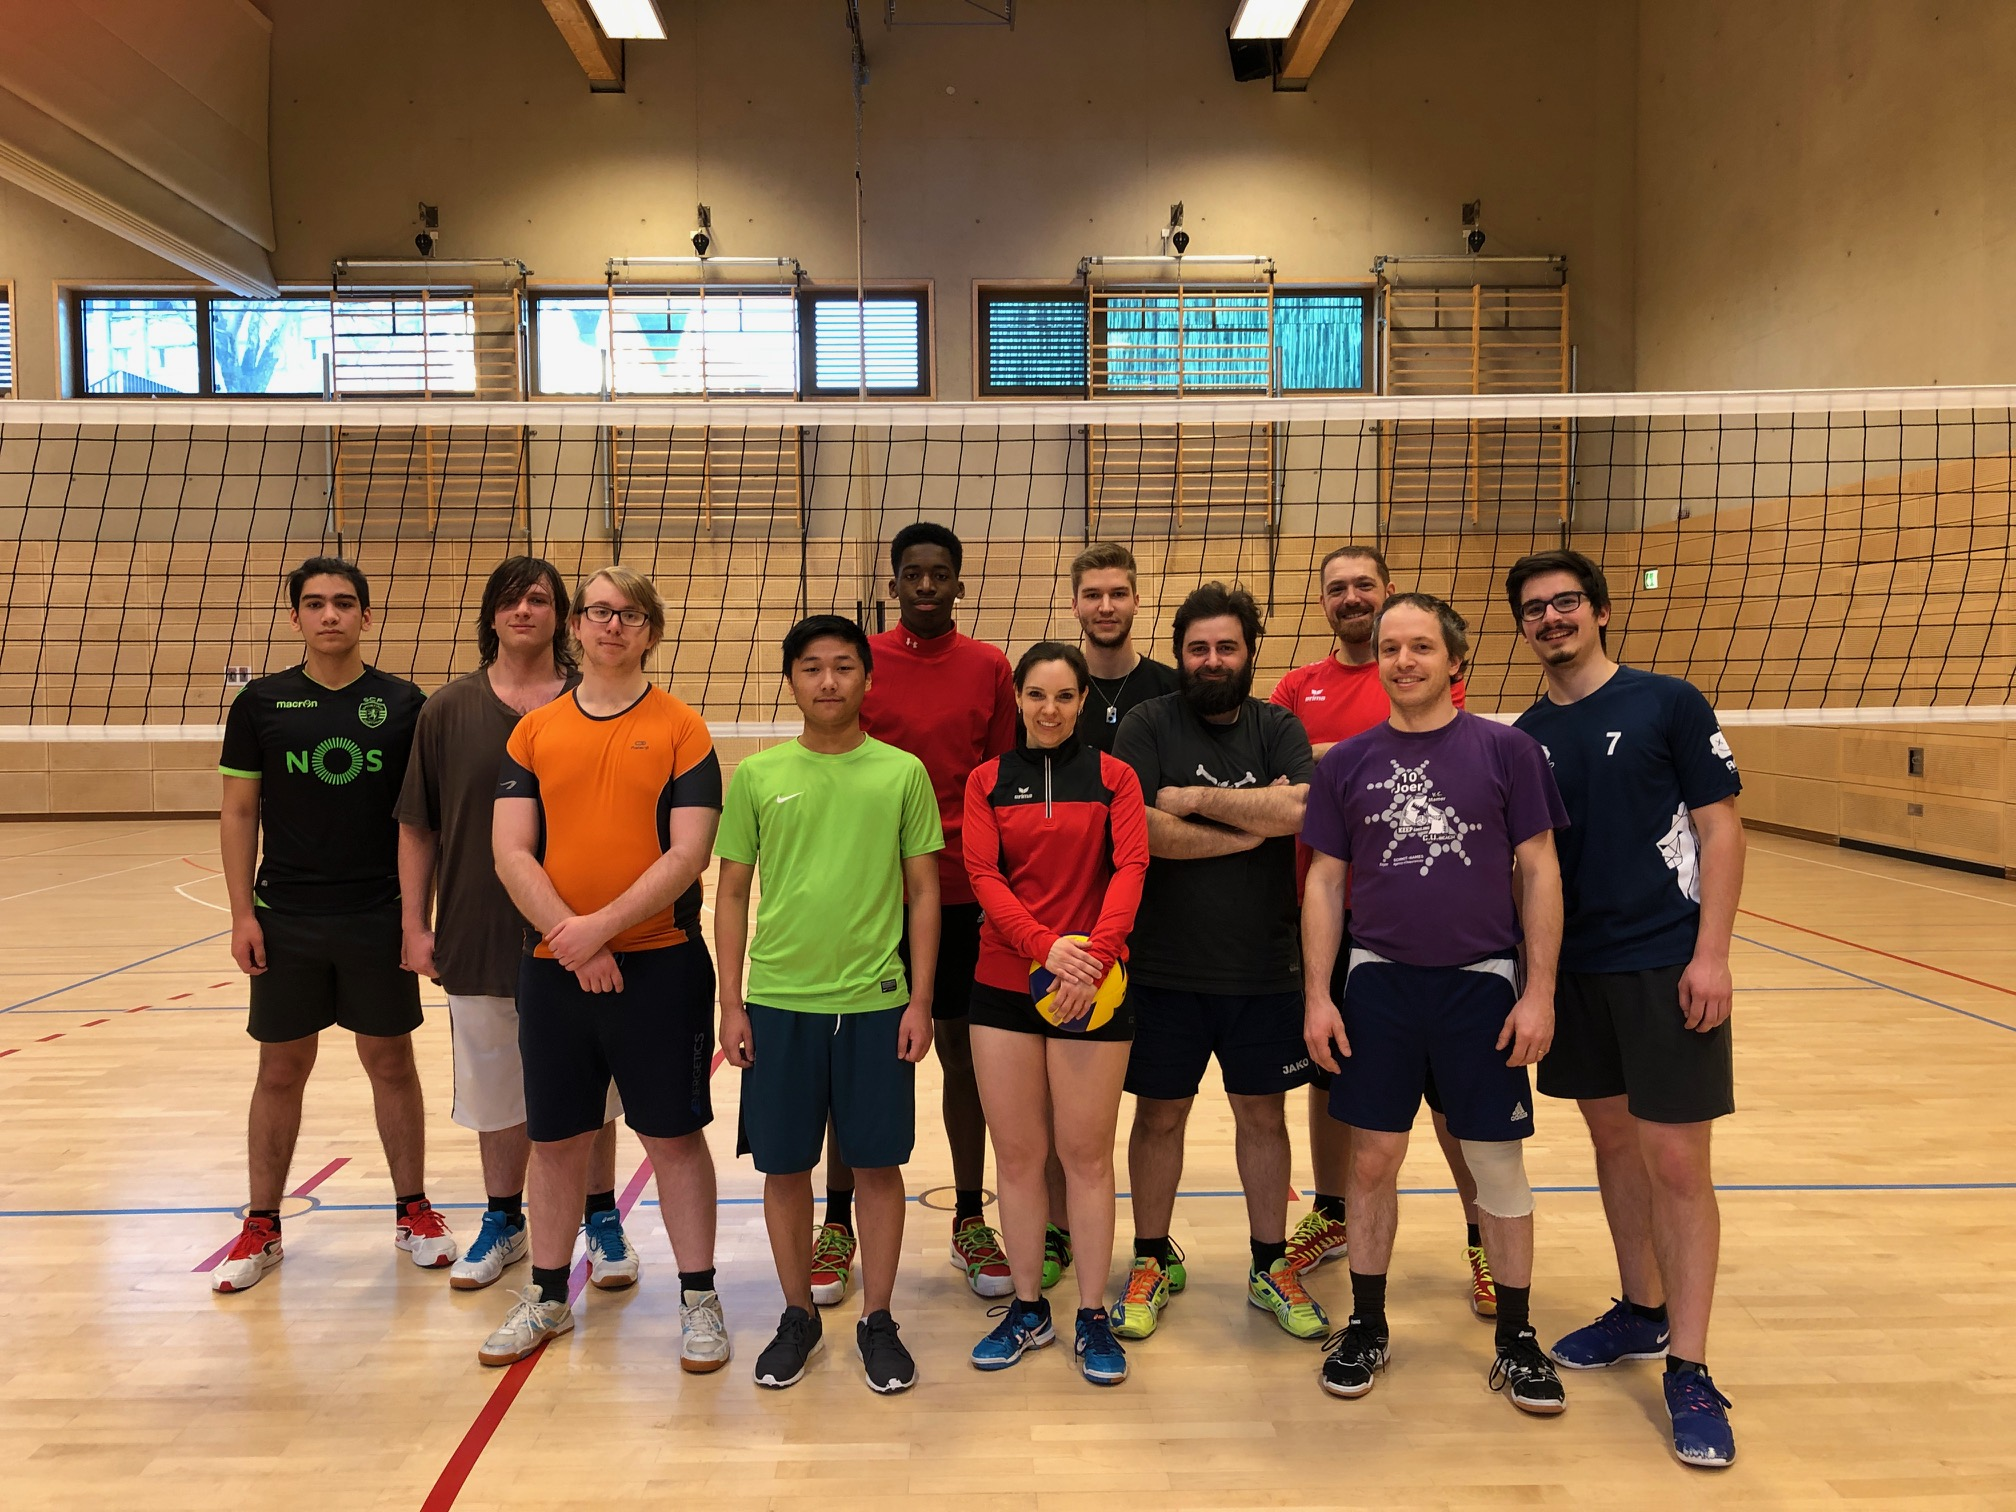 2019-02-27-volley-lam-lpem-2.jpeg